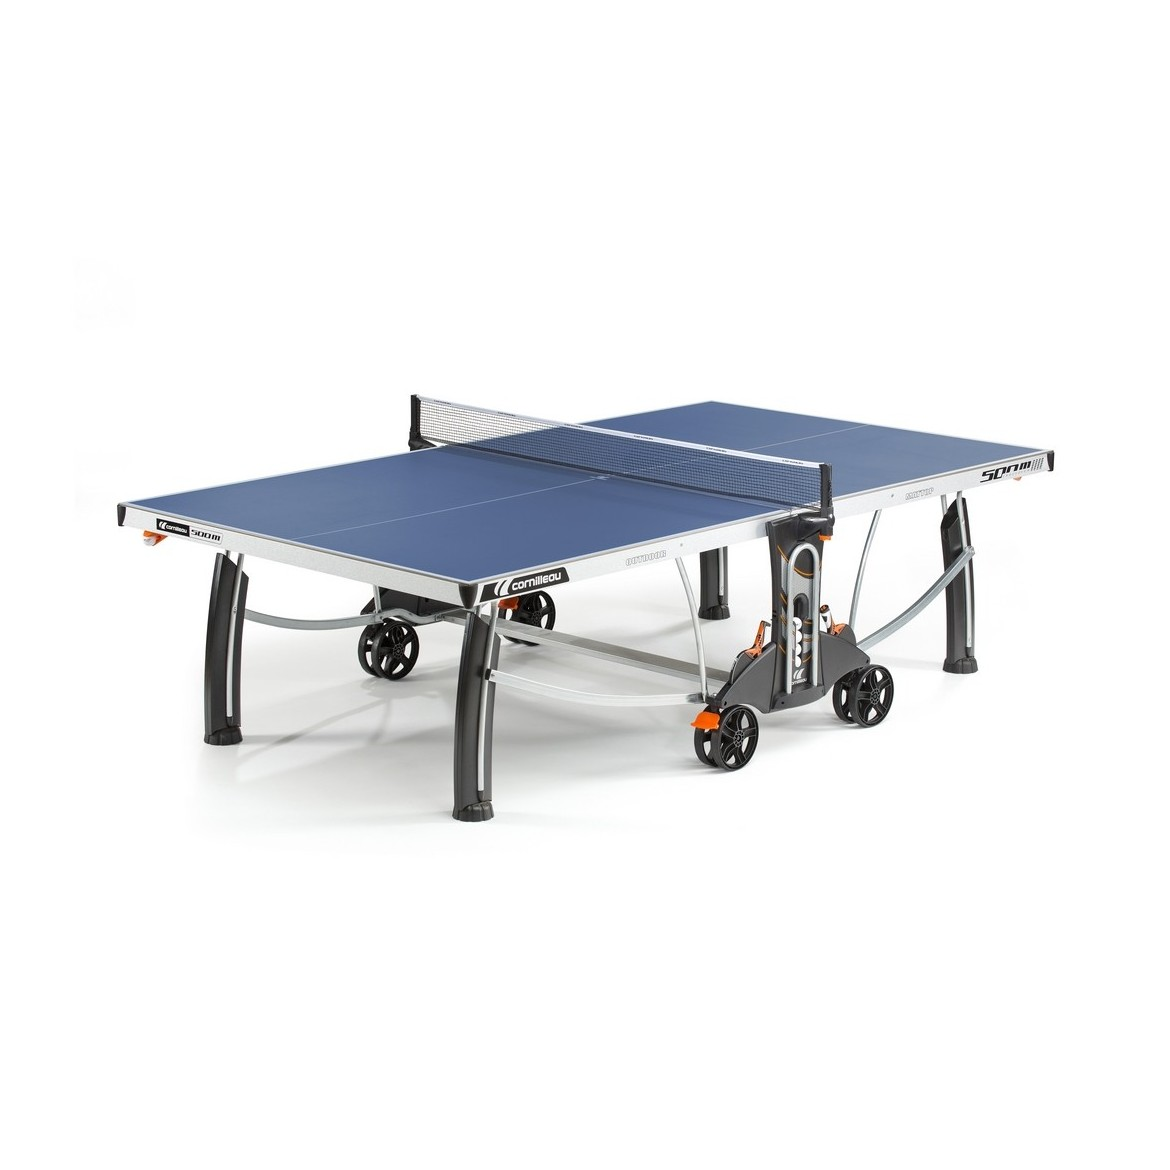 Table de ping pong 500M CROSSOVER - Cornilleau